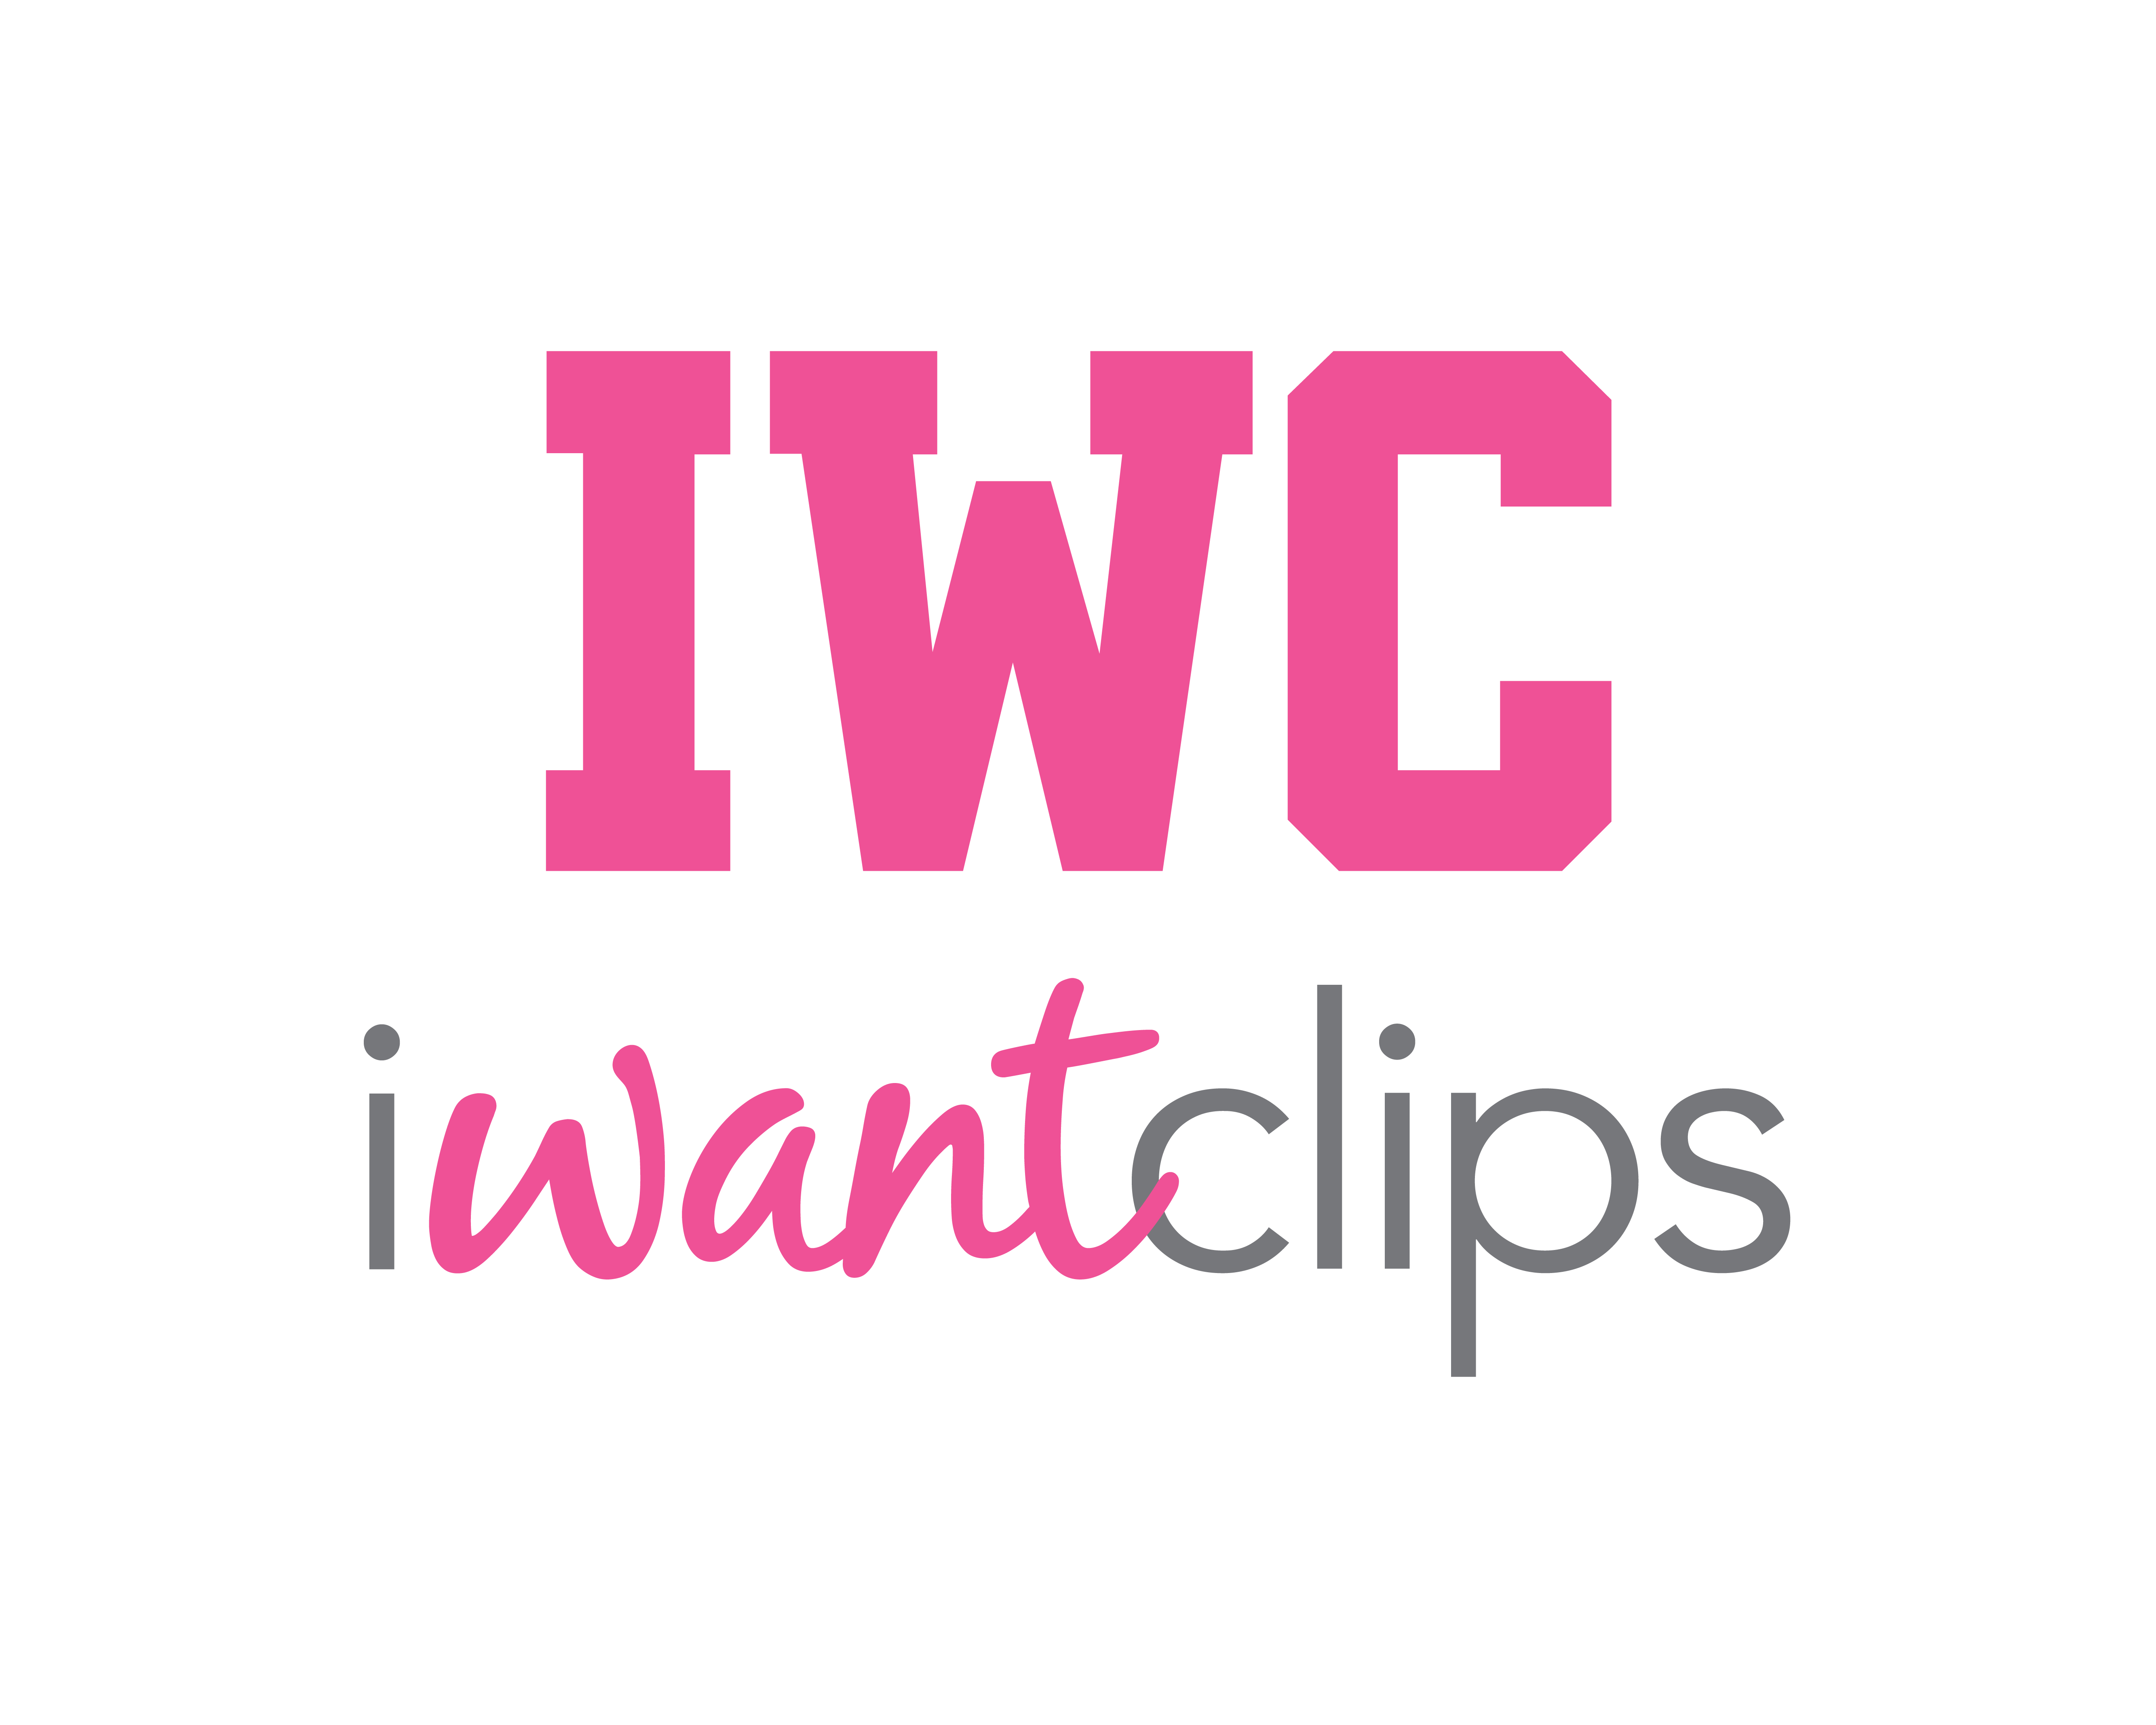 iWantClips Official Blog – iWantBlog